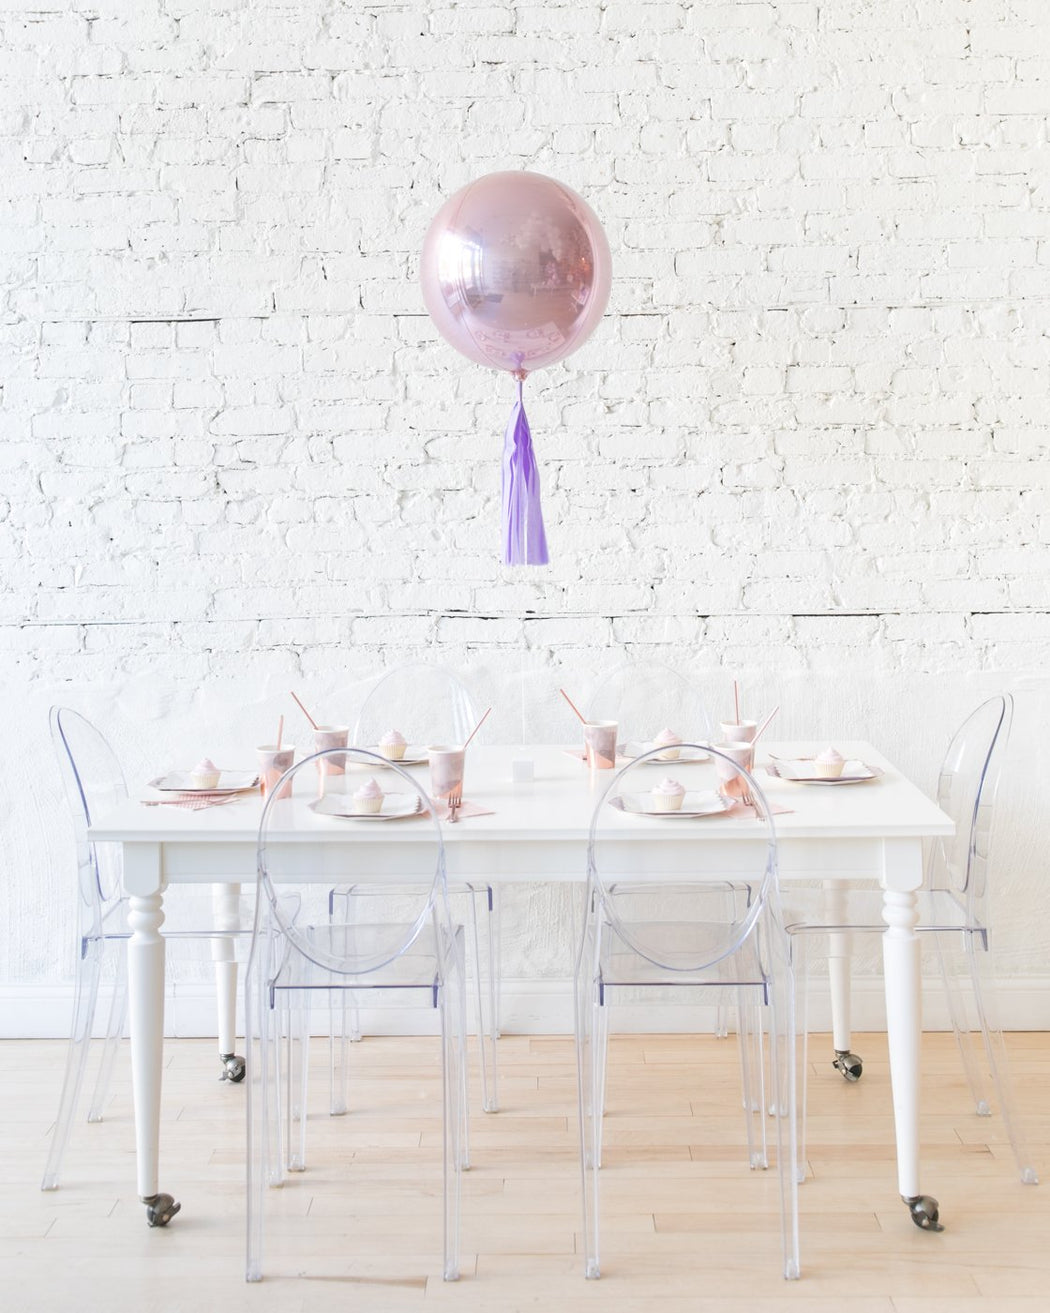 16in Rose Gold Orb Foil Balloon and Lavender Skirt Centerpiece